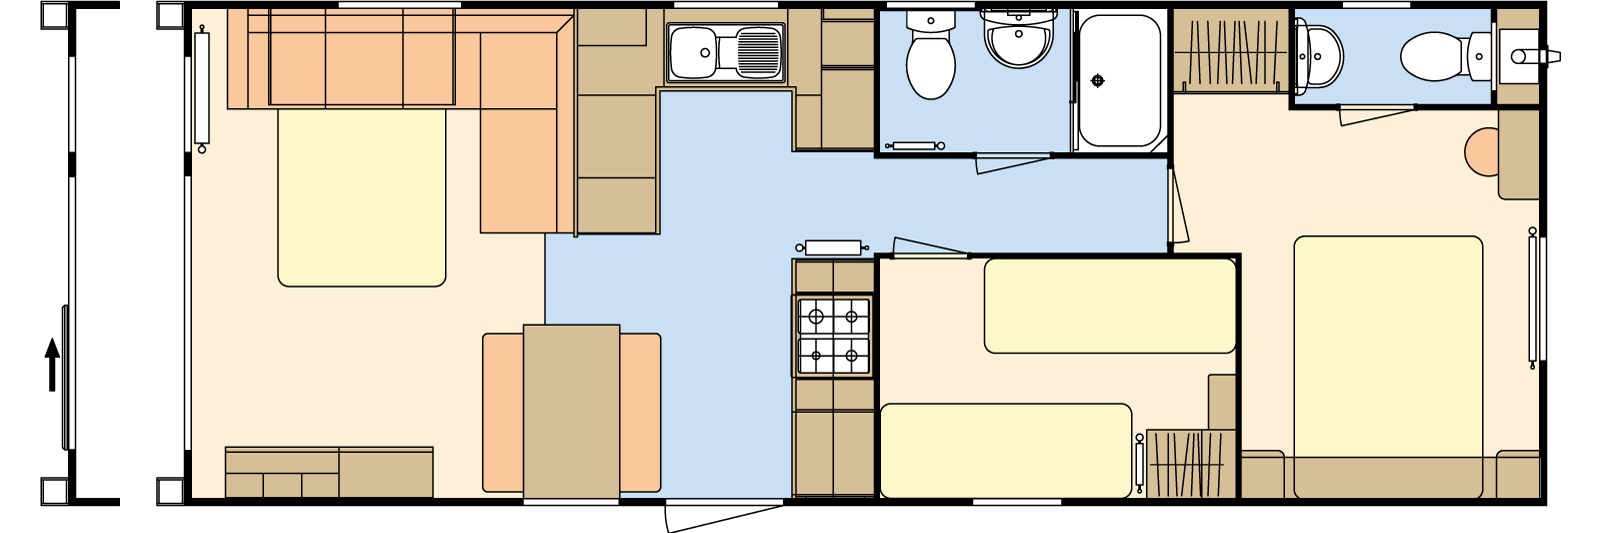 32 × 12 – 2 bedroom/6 berth